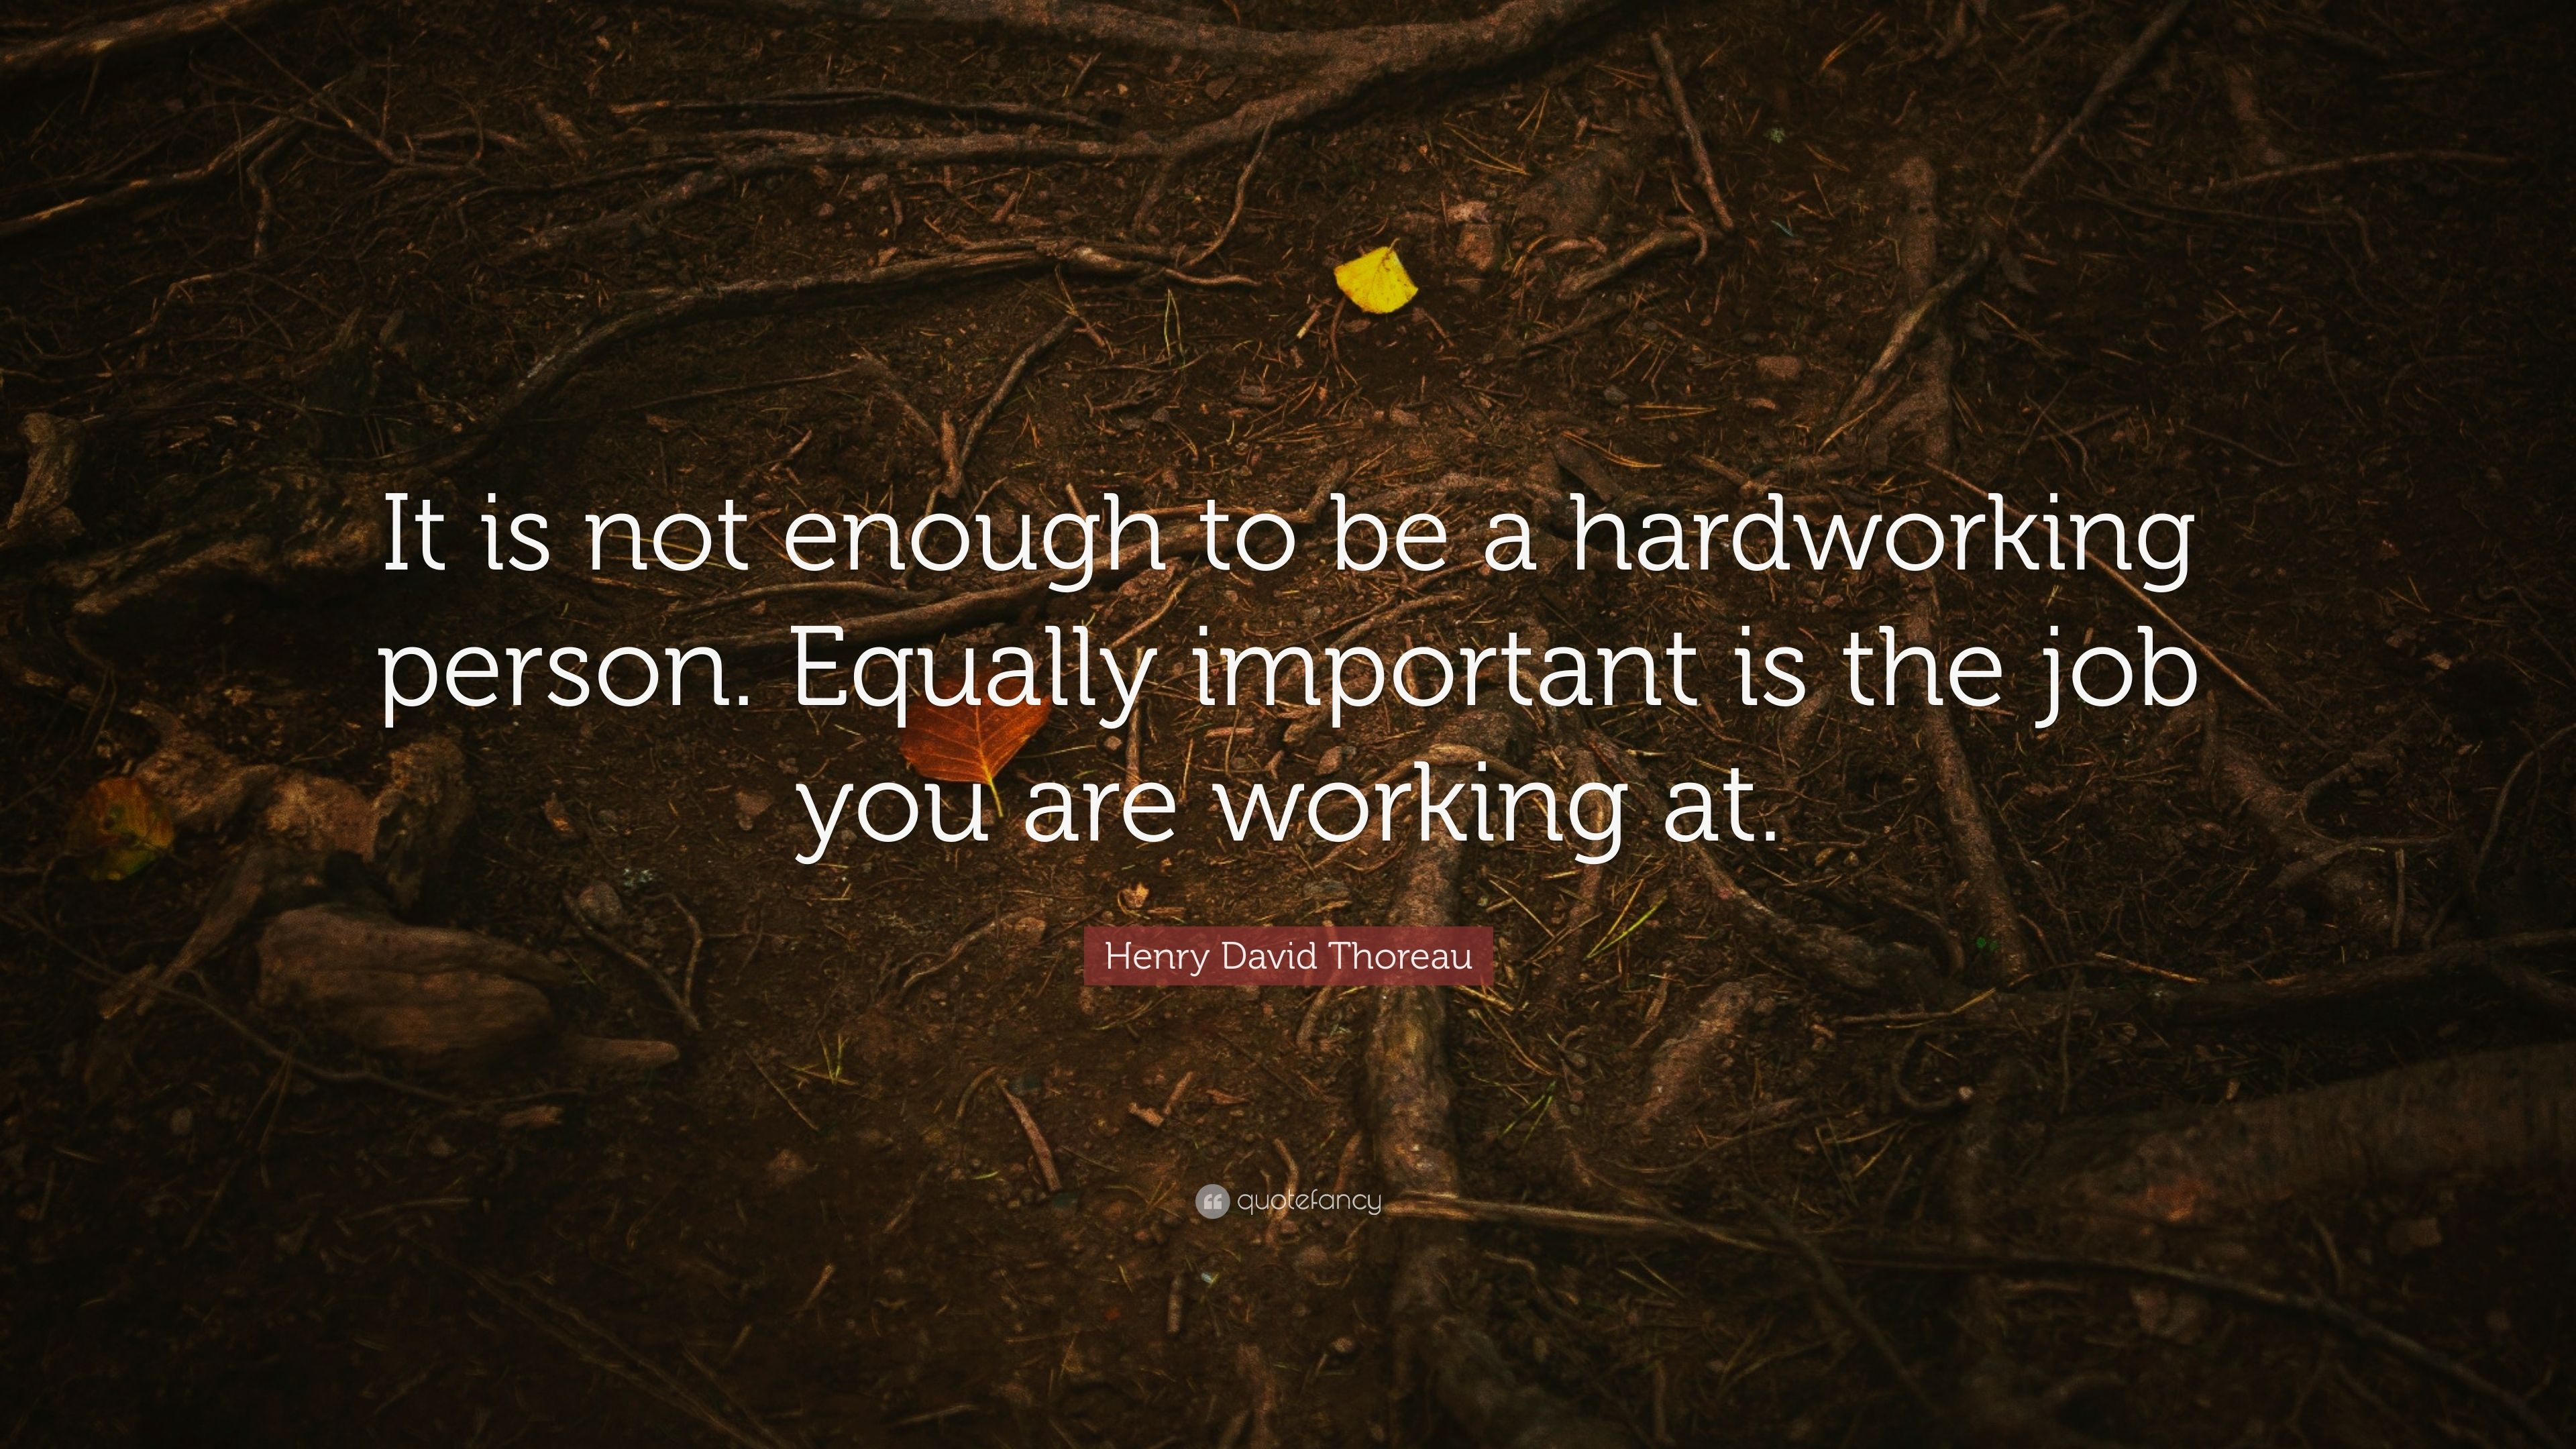 Henry David Thoreau Quote It Is Not Enough To Be A Hardworking